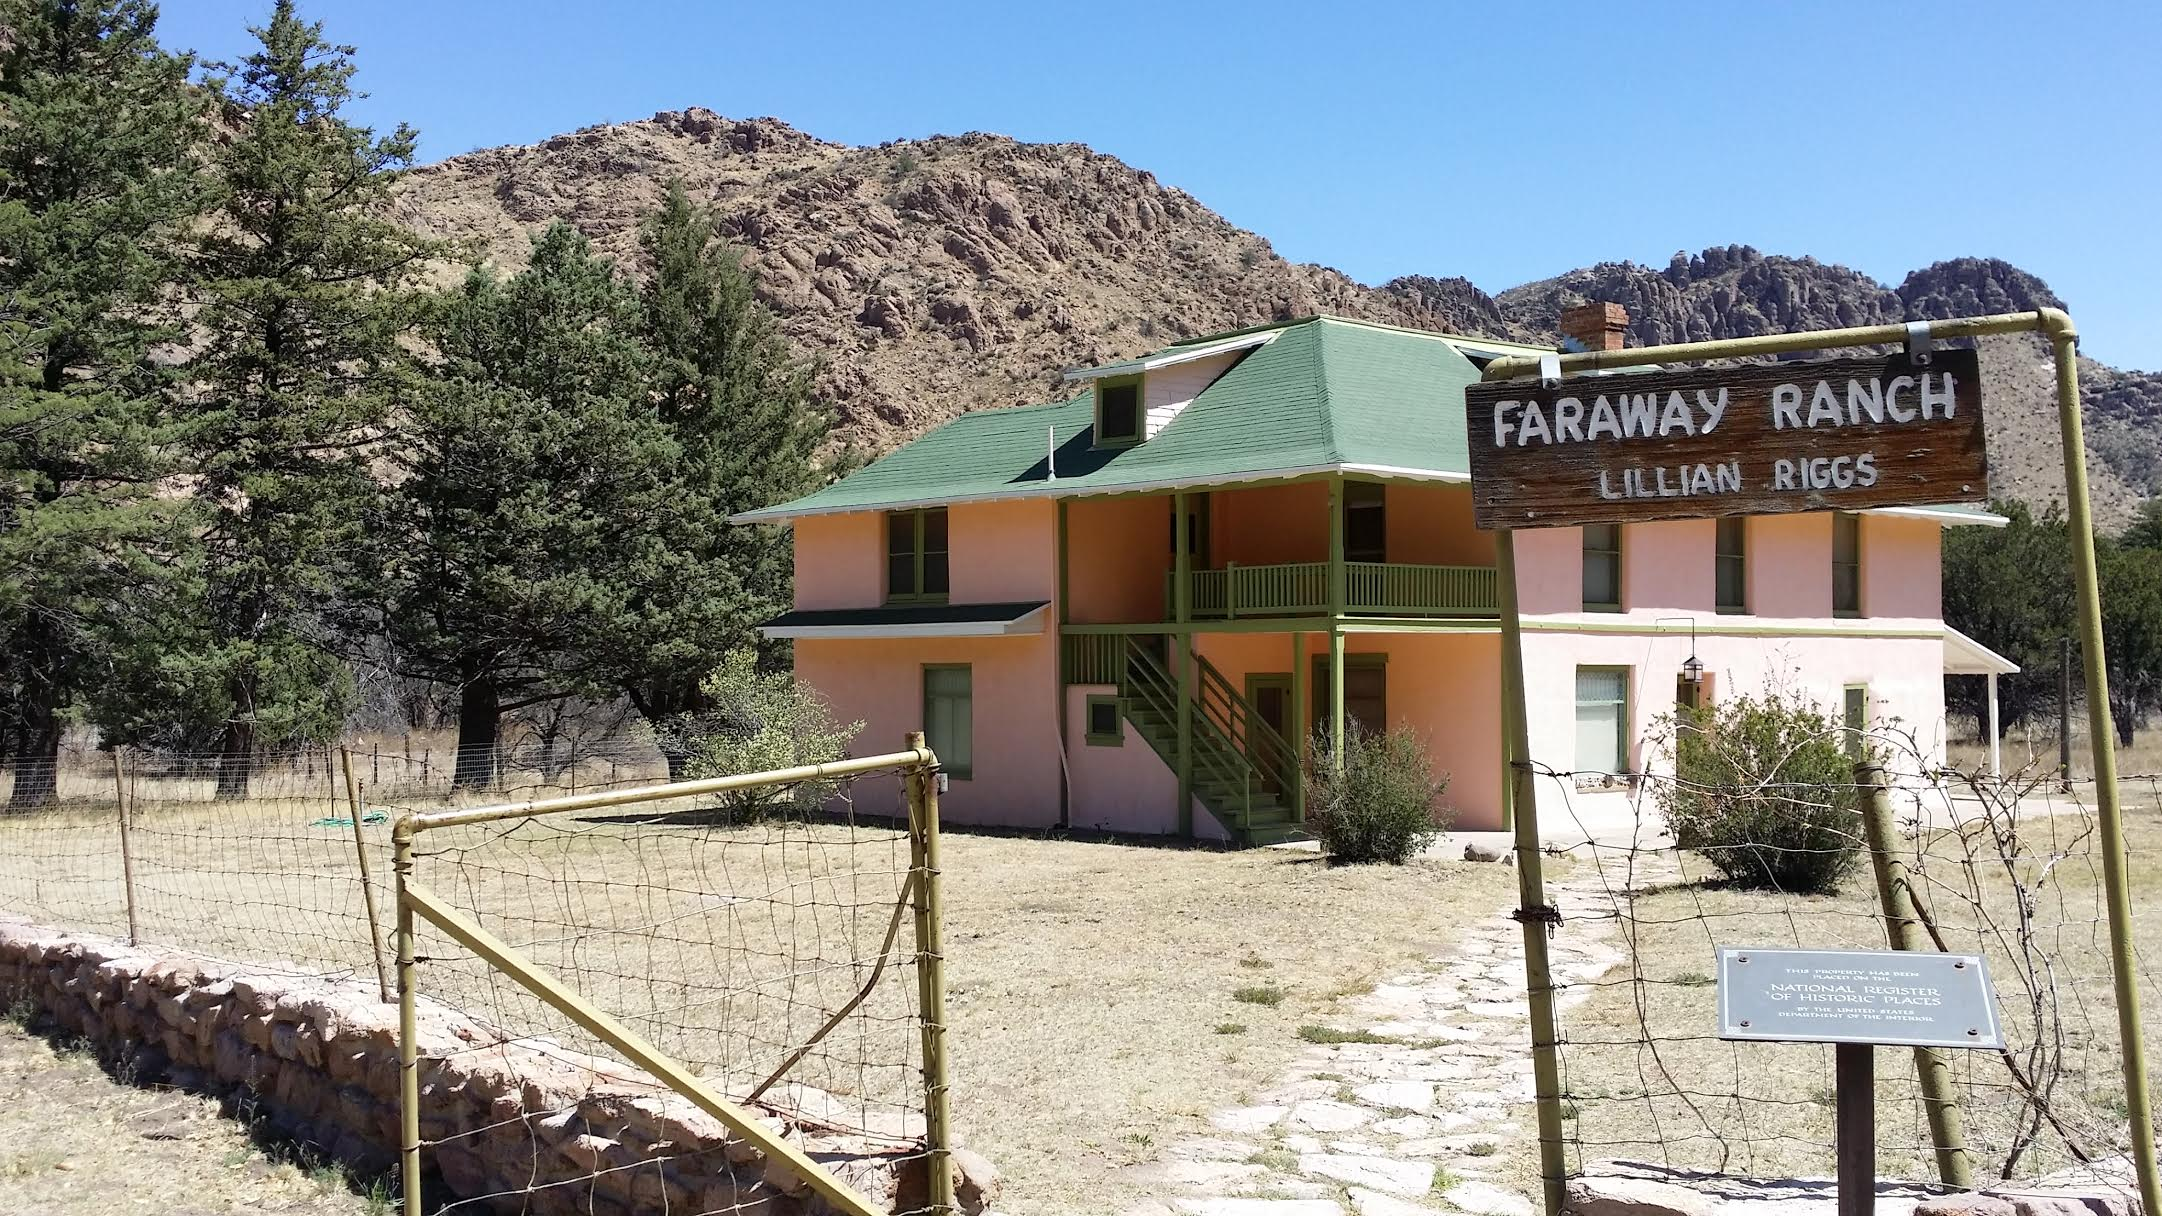 The Faraway Ranch Operated Until 1975. Since Then it Has Been Open For Tours to the Public.